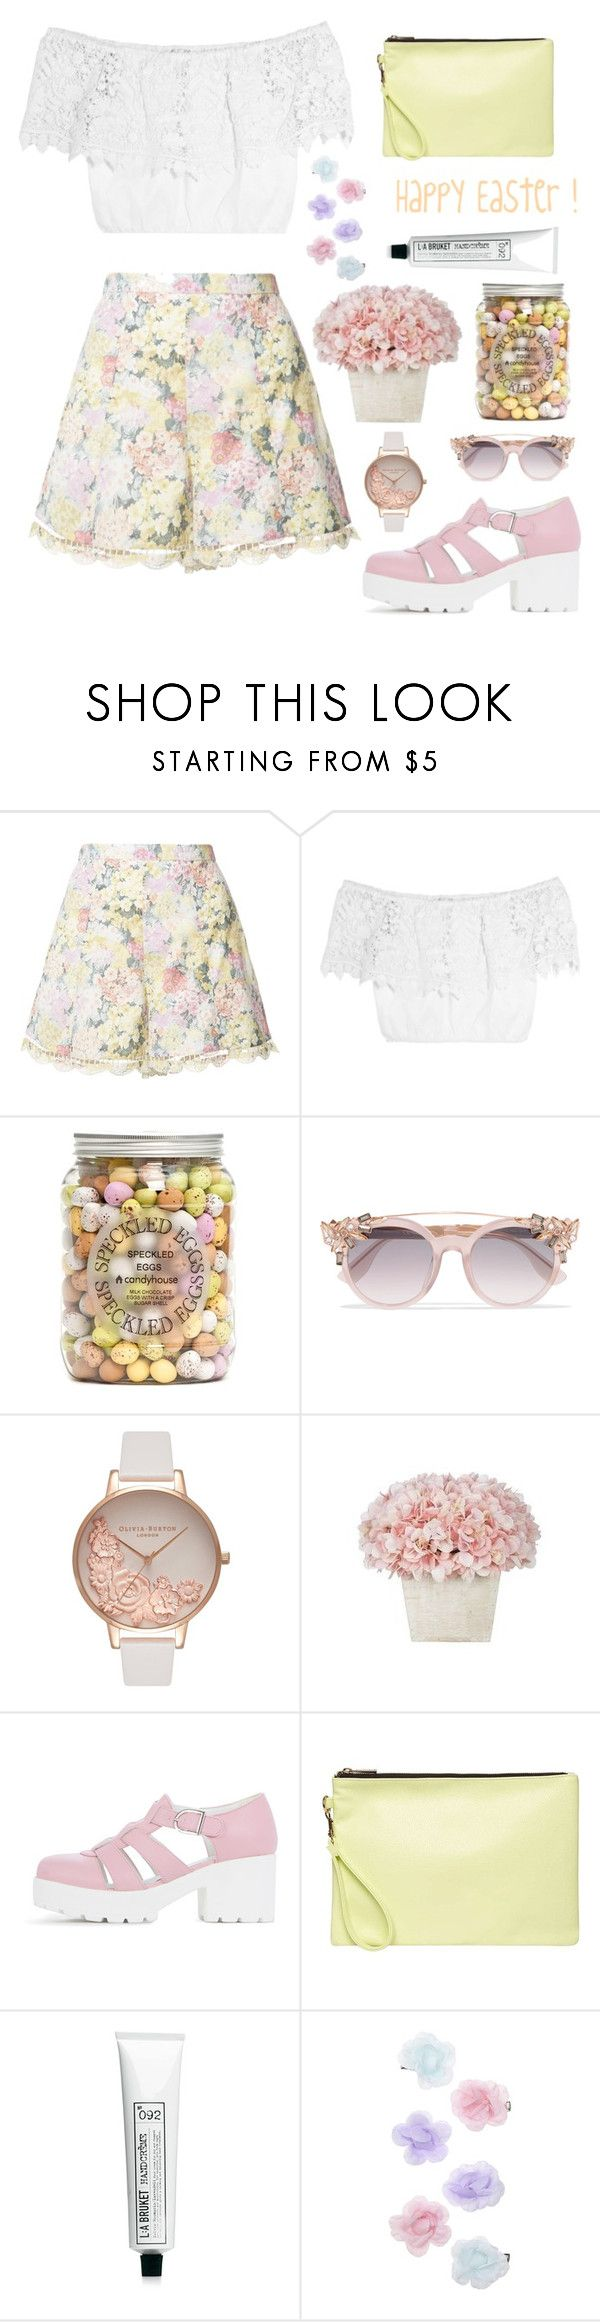 """""""Happy Easter !! 👯🐰🐣🐇🌼💐🌹"""" by hermiona355 ❤ liked on Polyvore featuring Zimmermann, Miguelina, Jimmy Choo, Olivia Burton, Dorothy Perkins, L:A Bruket and Monsoon"""